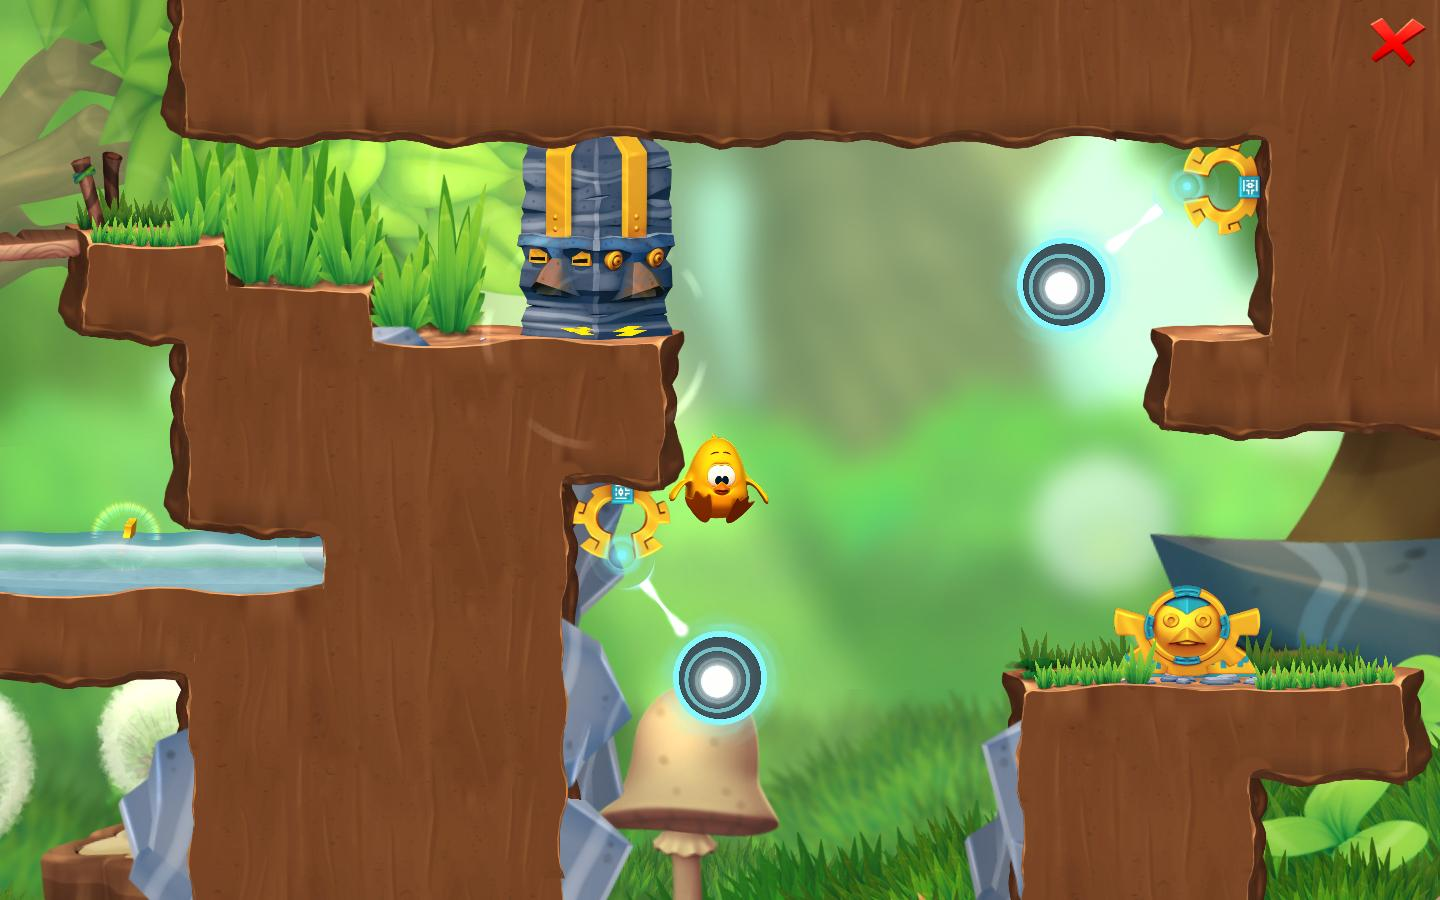 [gamegokil.com] Toki Tori 2 For PC Single Link Full Version